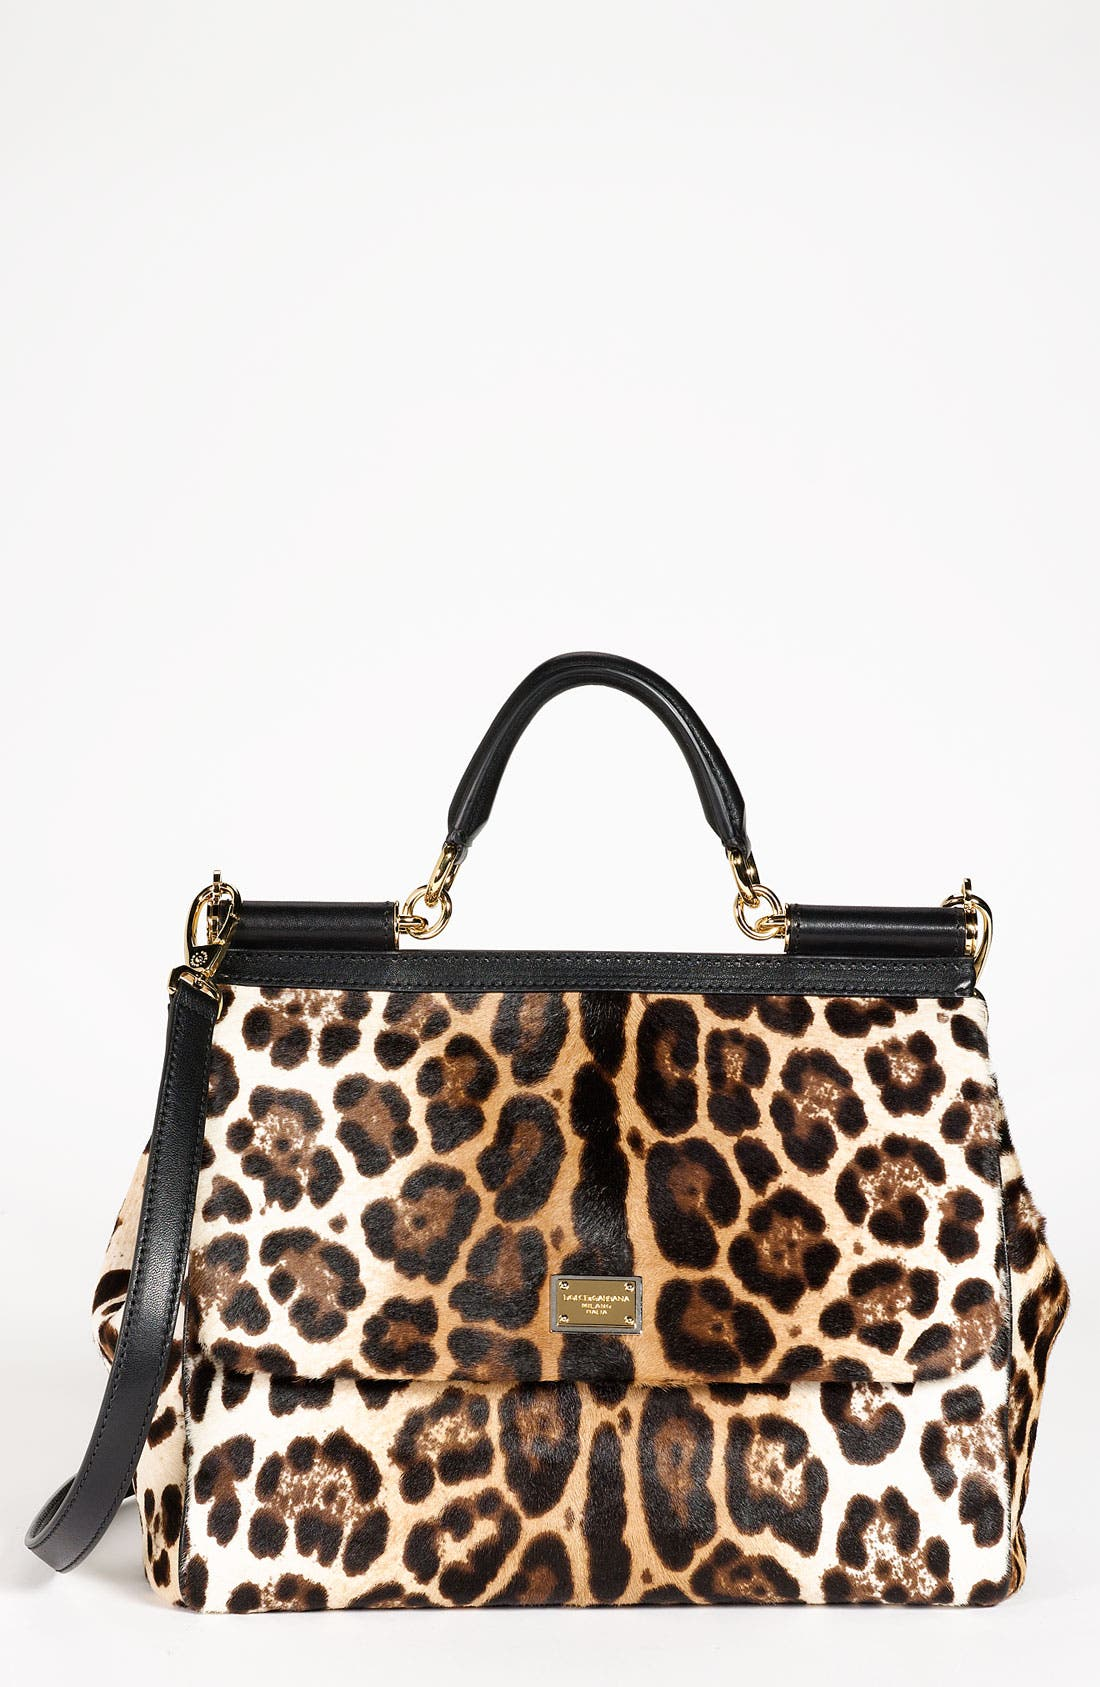 Main Image - Dolce&Gabbana 'Miss Sicily' Calf Hair & Leather Satchel